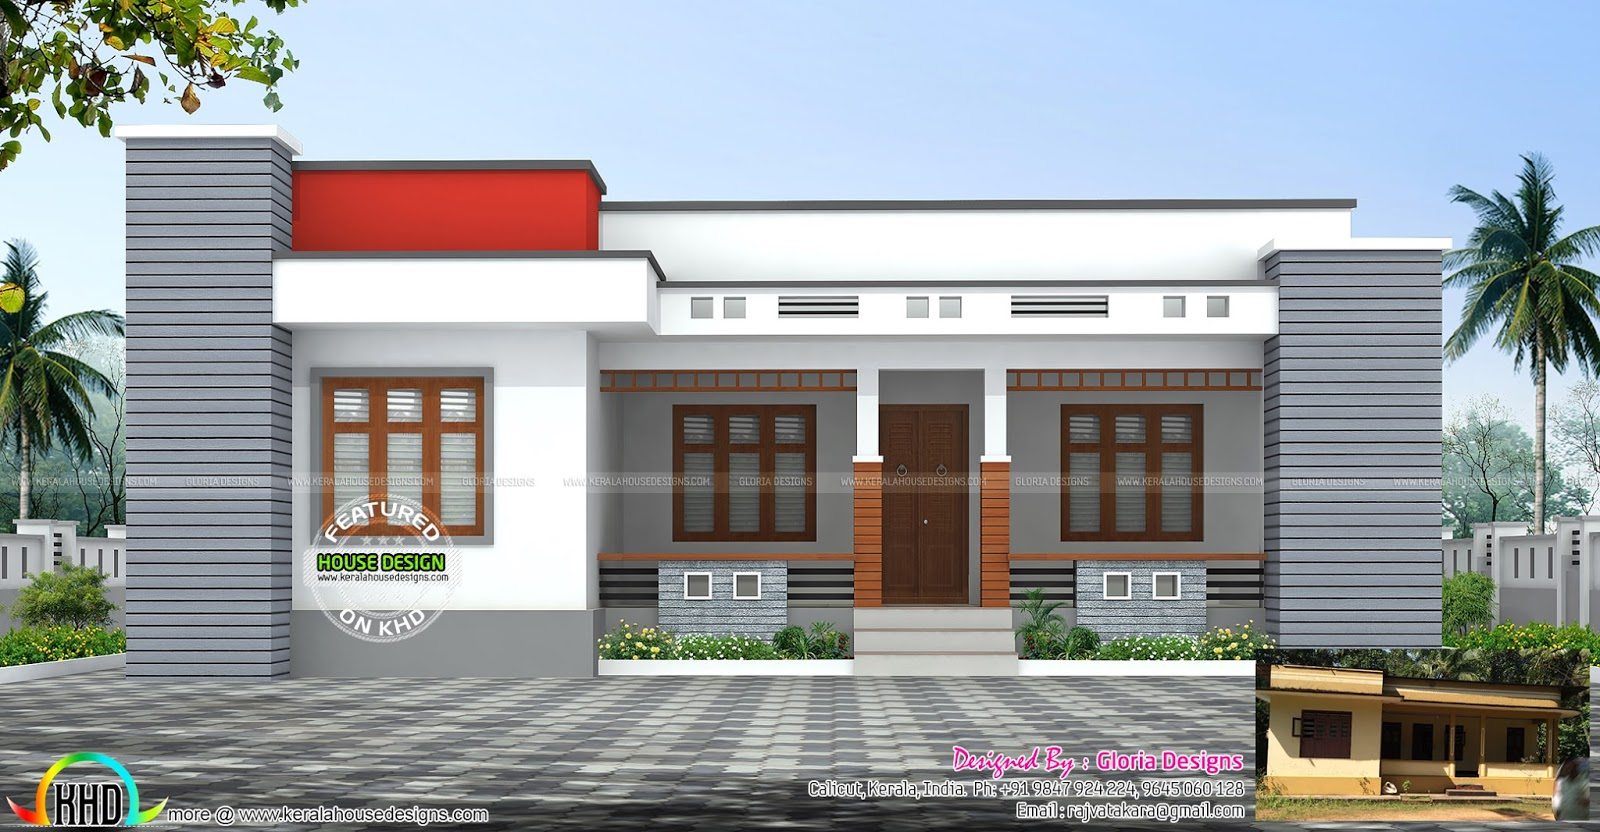 April 2016 kerala home design and floor plans for Single floor house plans kerala style